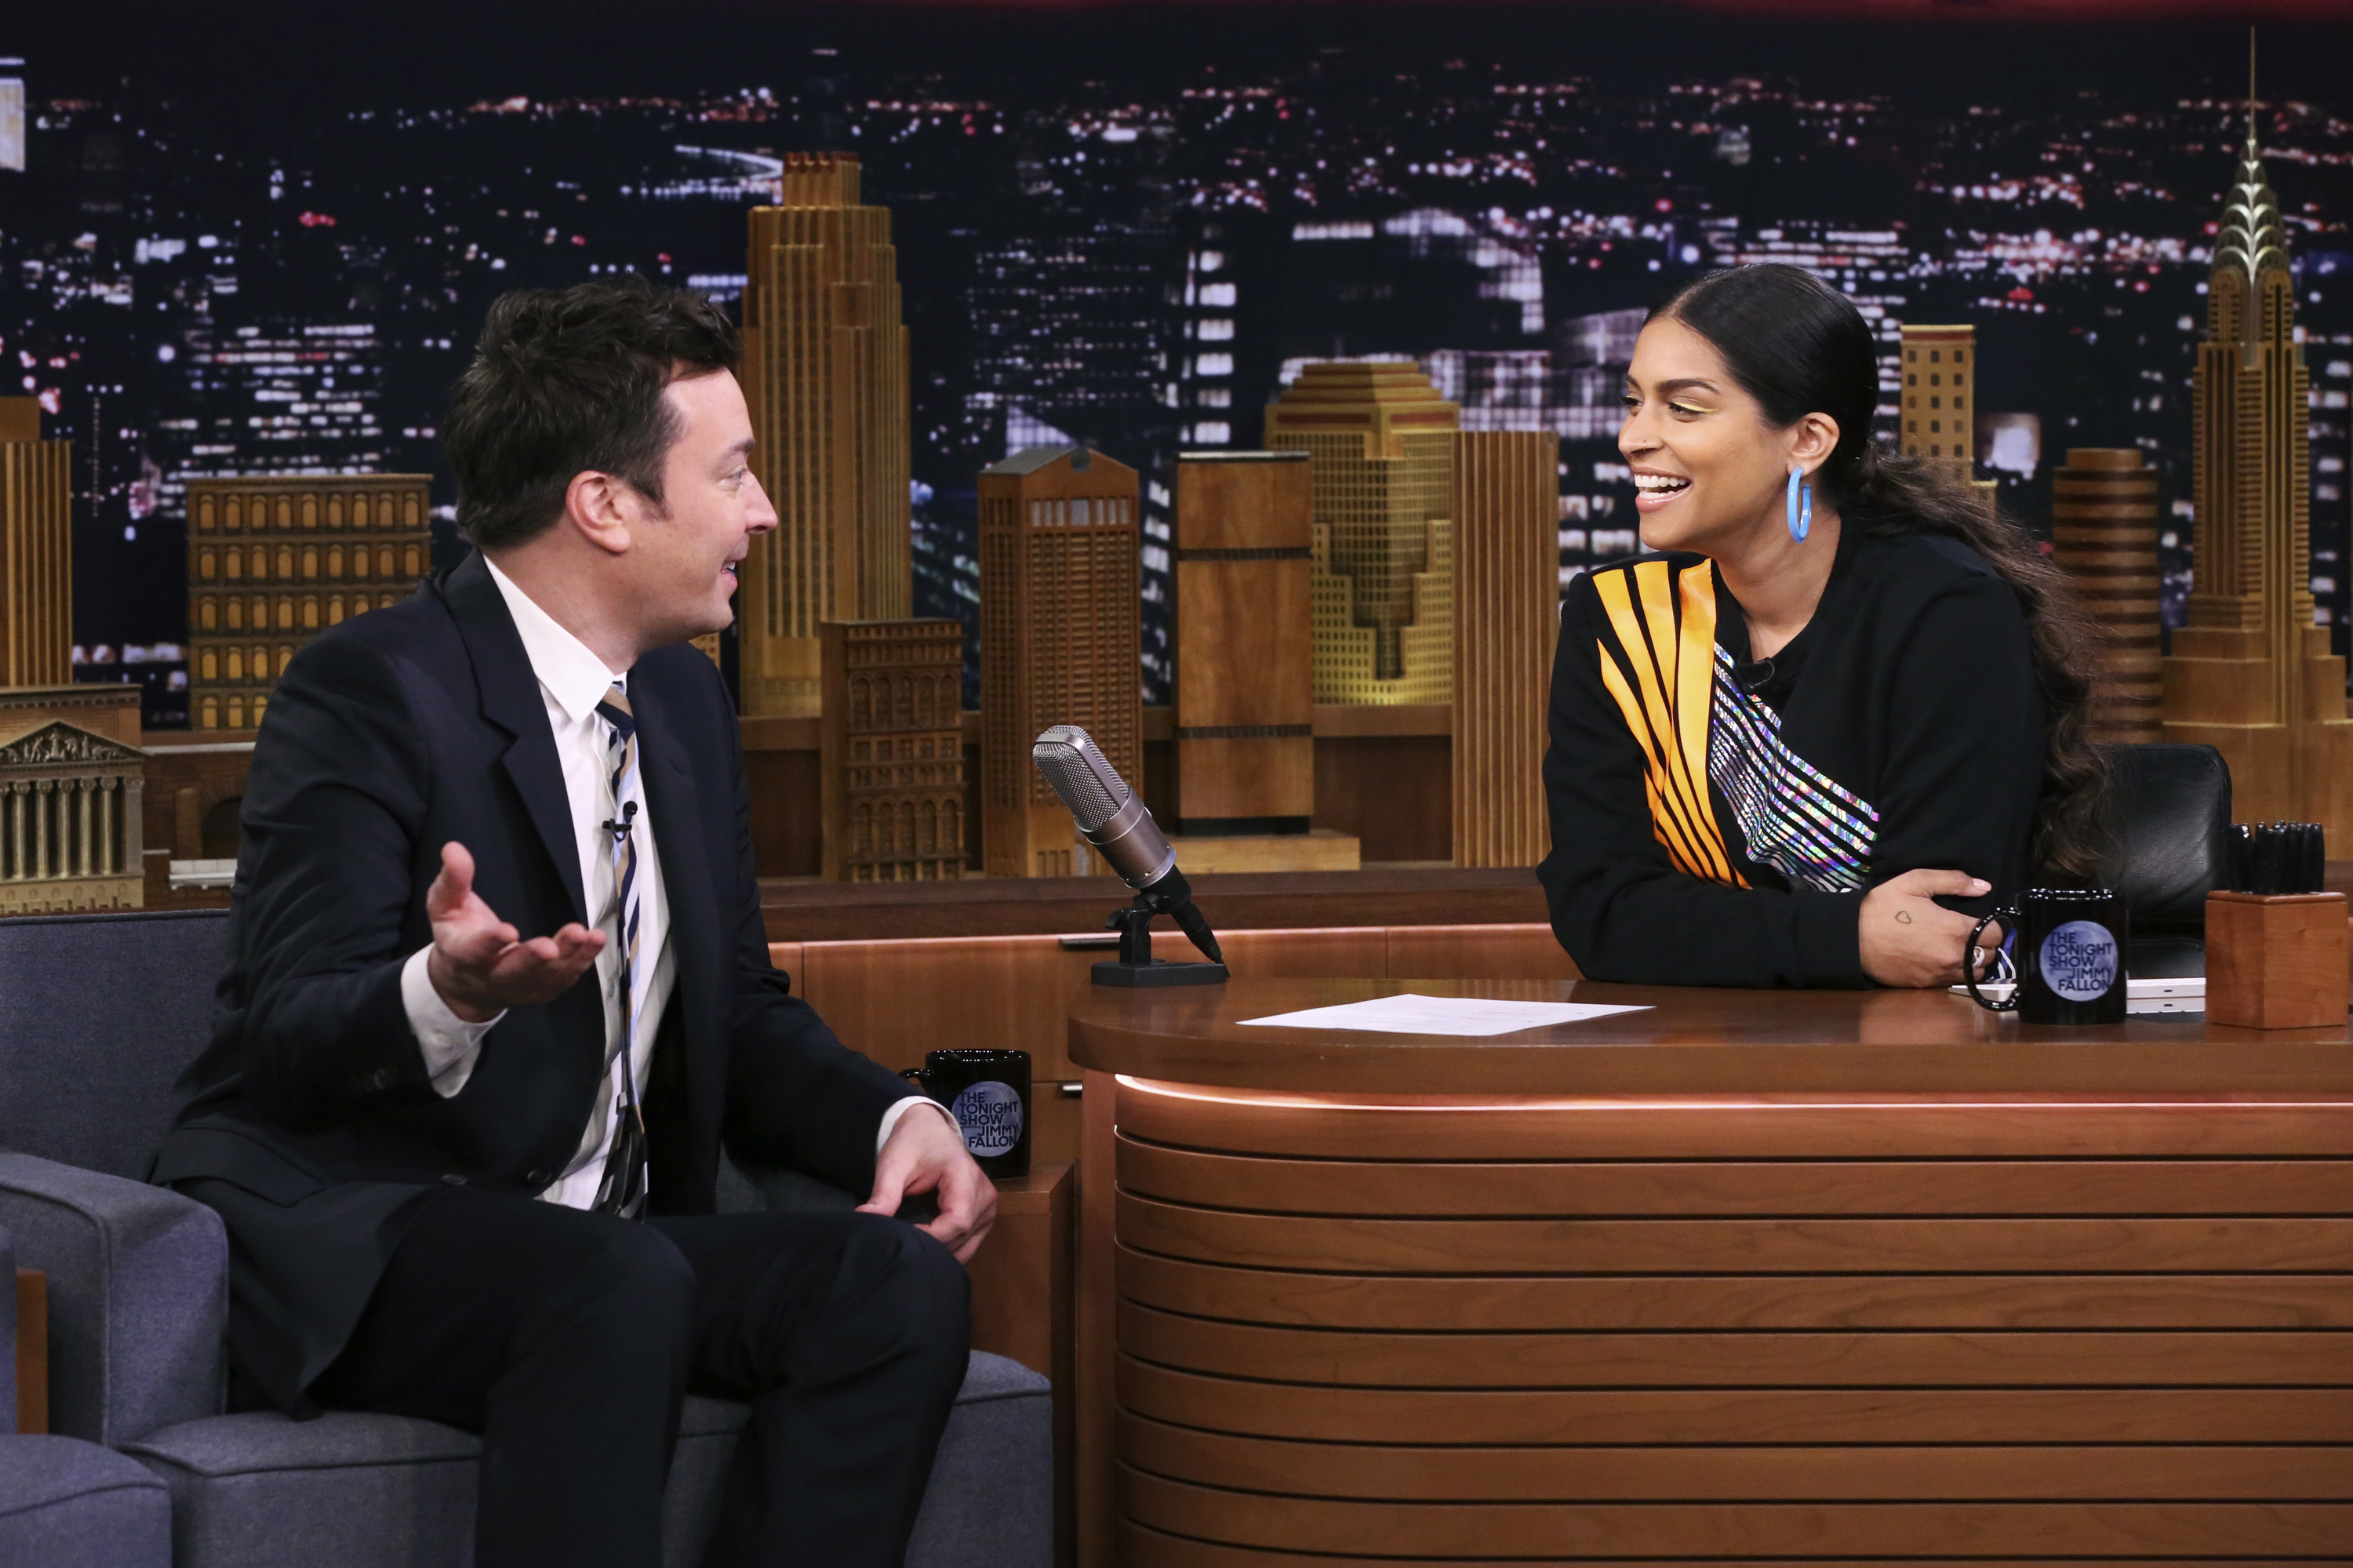 Fans Are Psyched That Lilly Singh Is Hosting A Late-Night Show